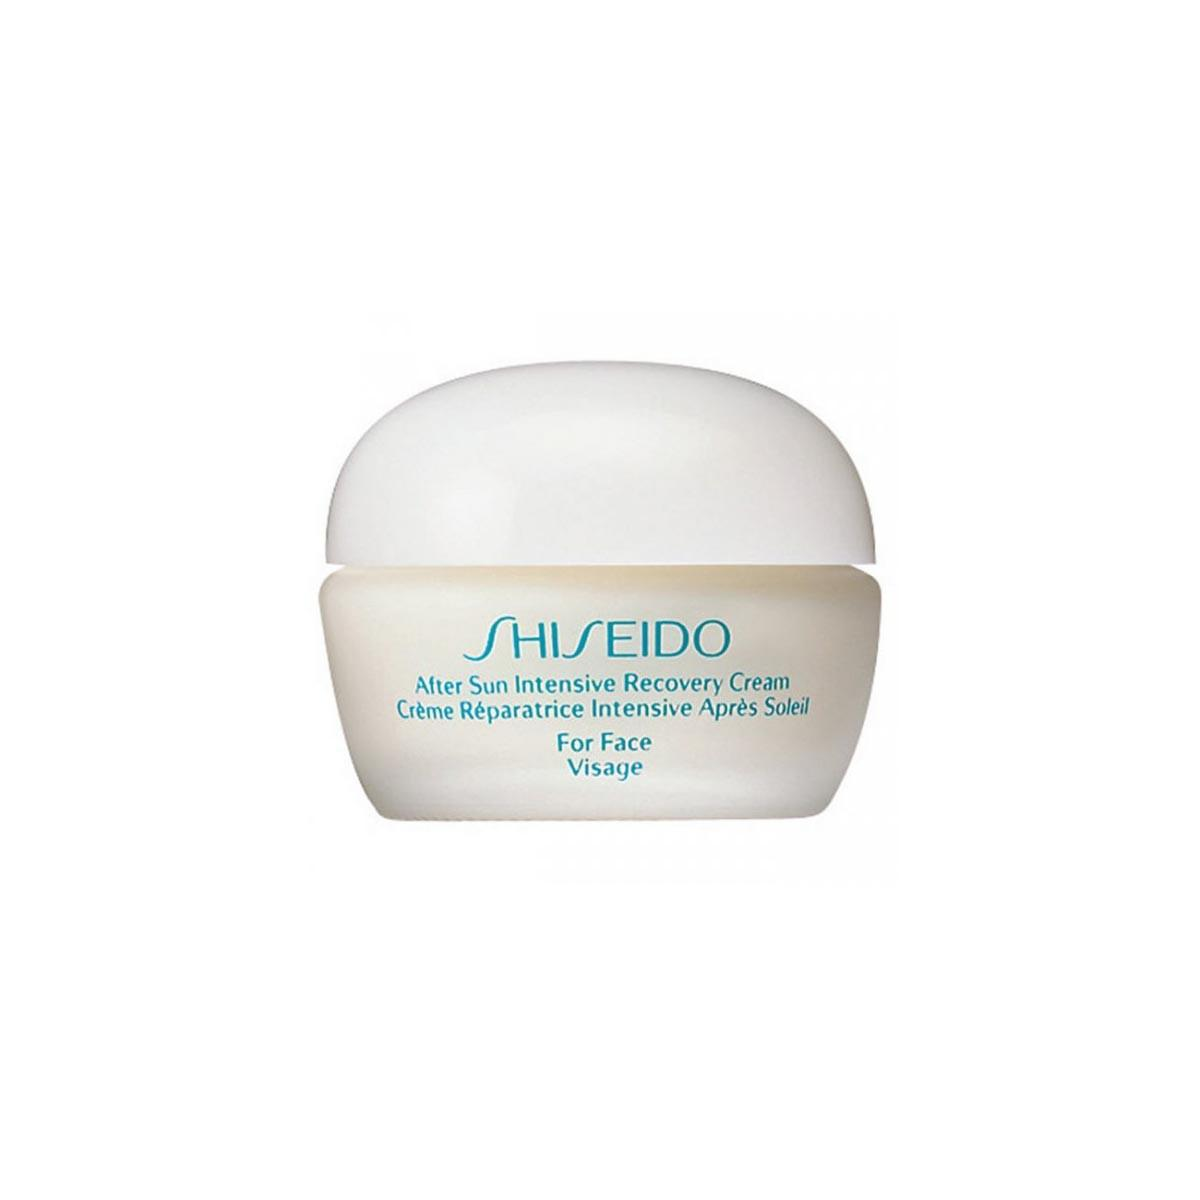 After Sun Intensive Recovery Cream 40ml